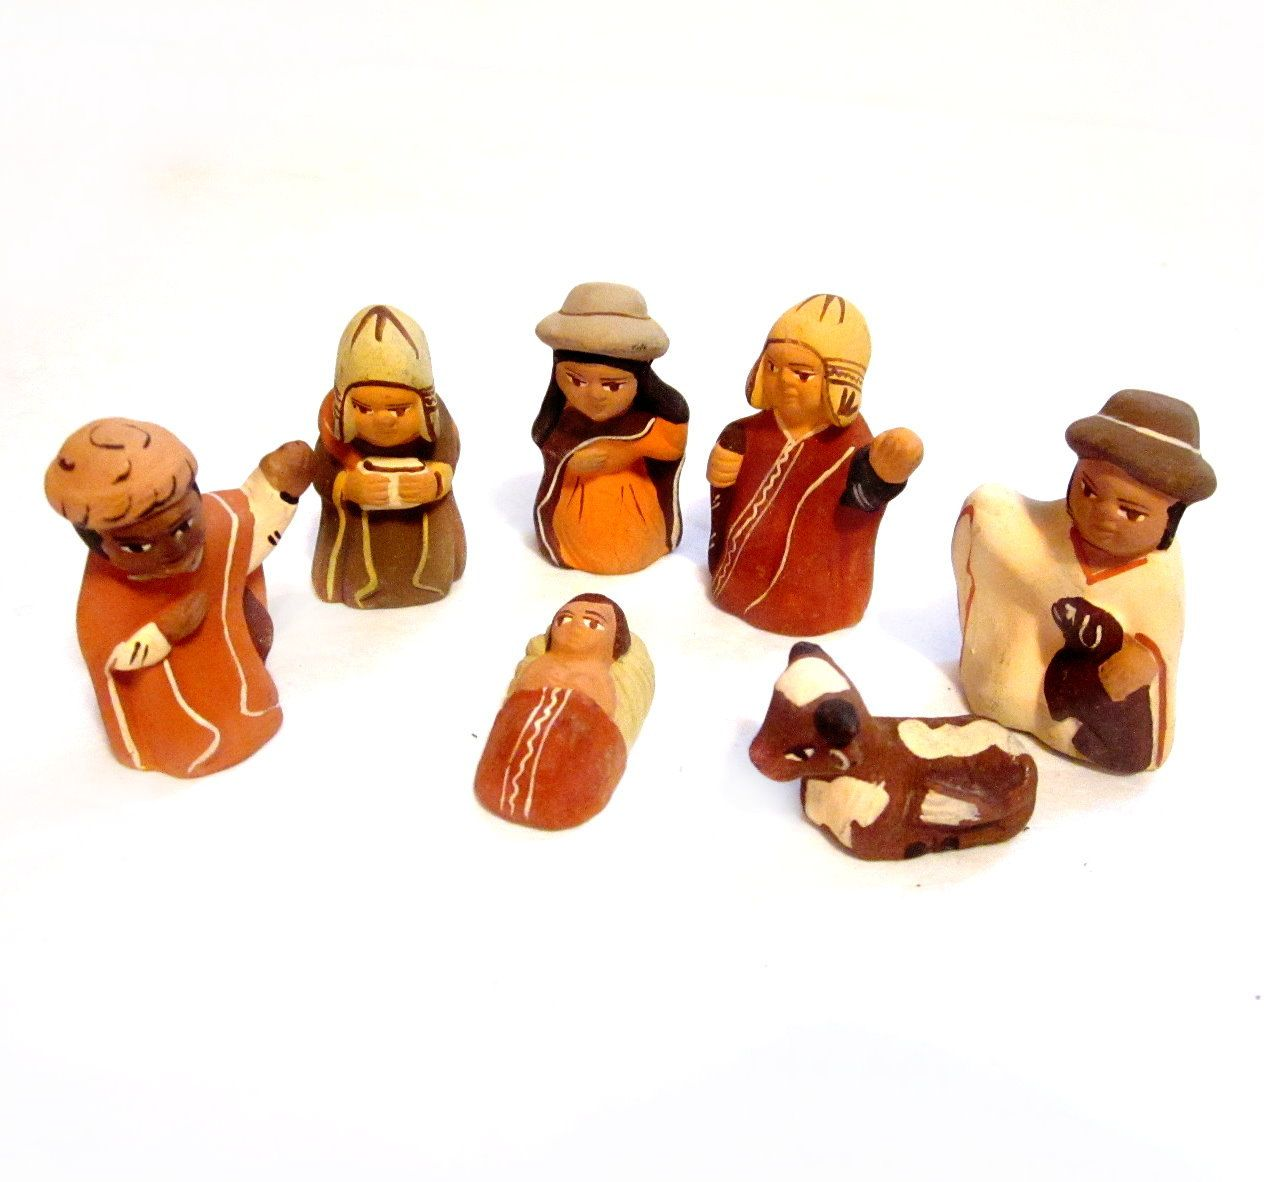 Handmade Nativity Scene Pottery Christmas Figures